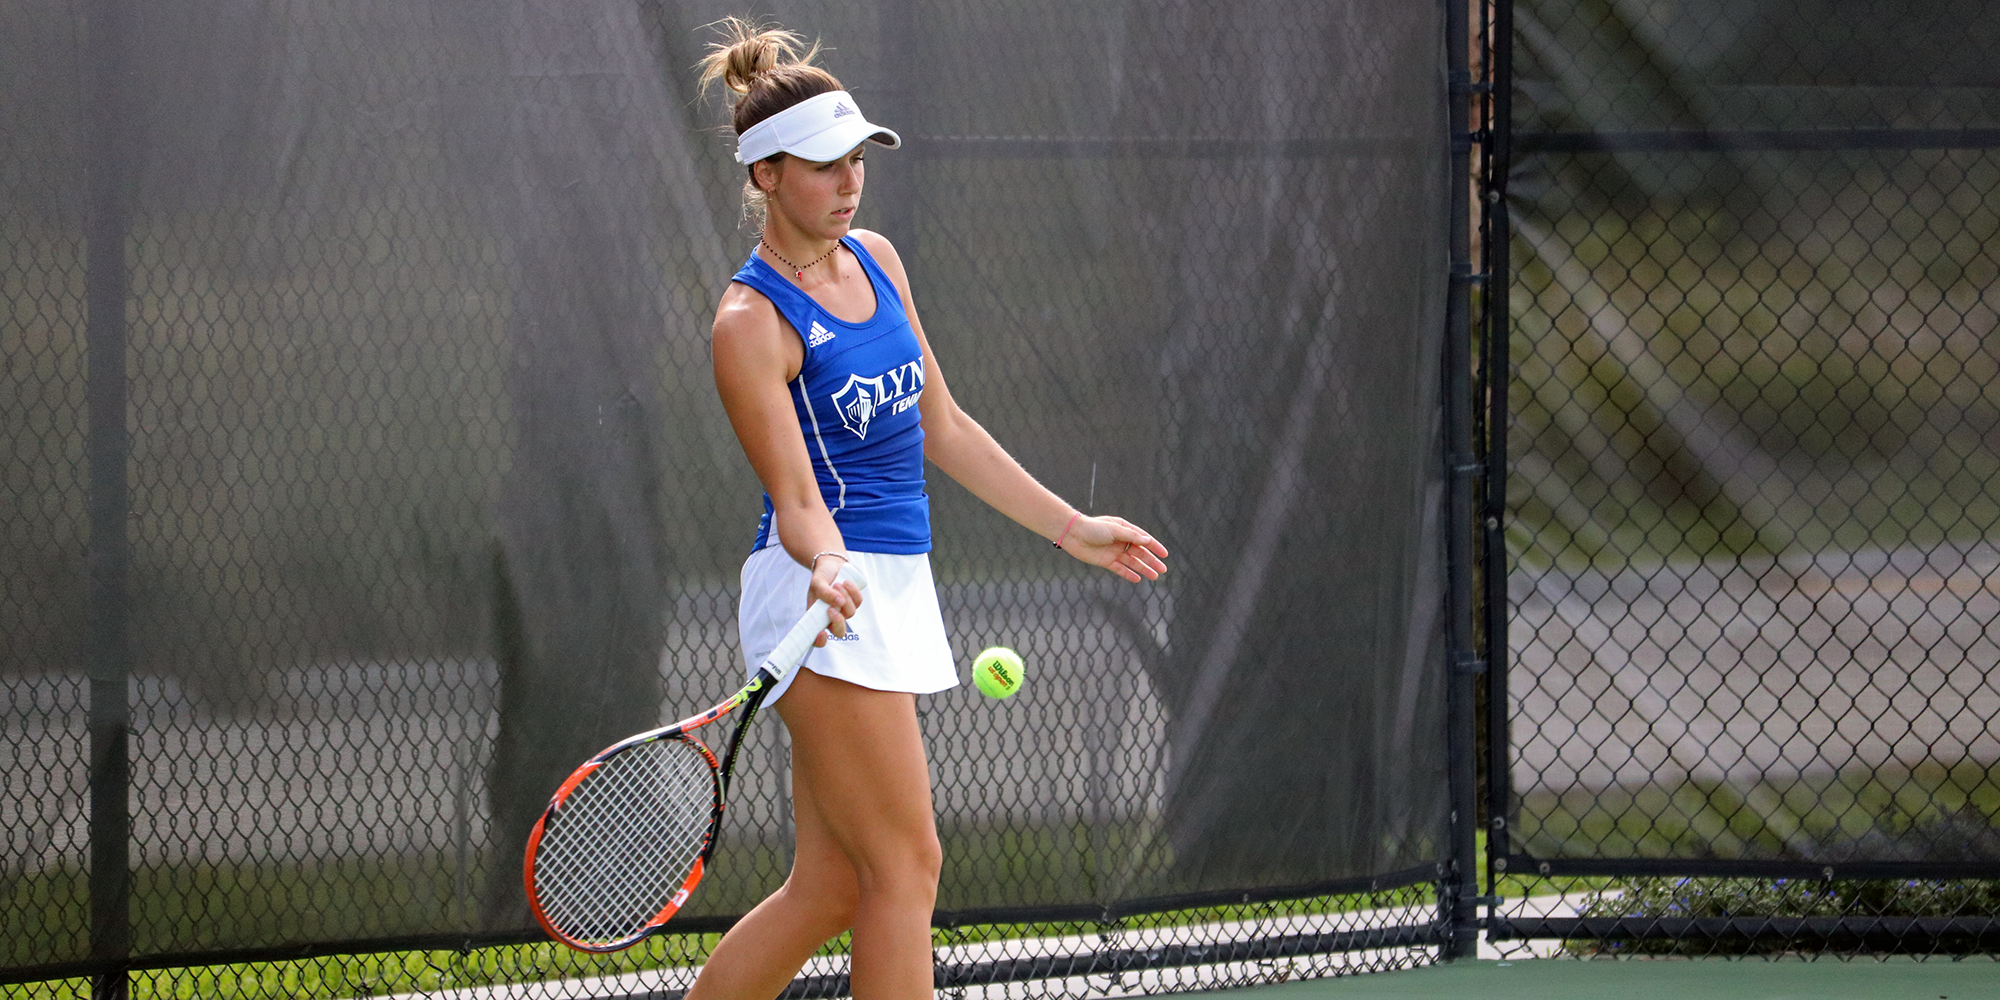 Blackbird Down! No. 2 Women's Tennis Sweeps LIU Brooklyn